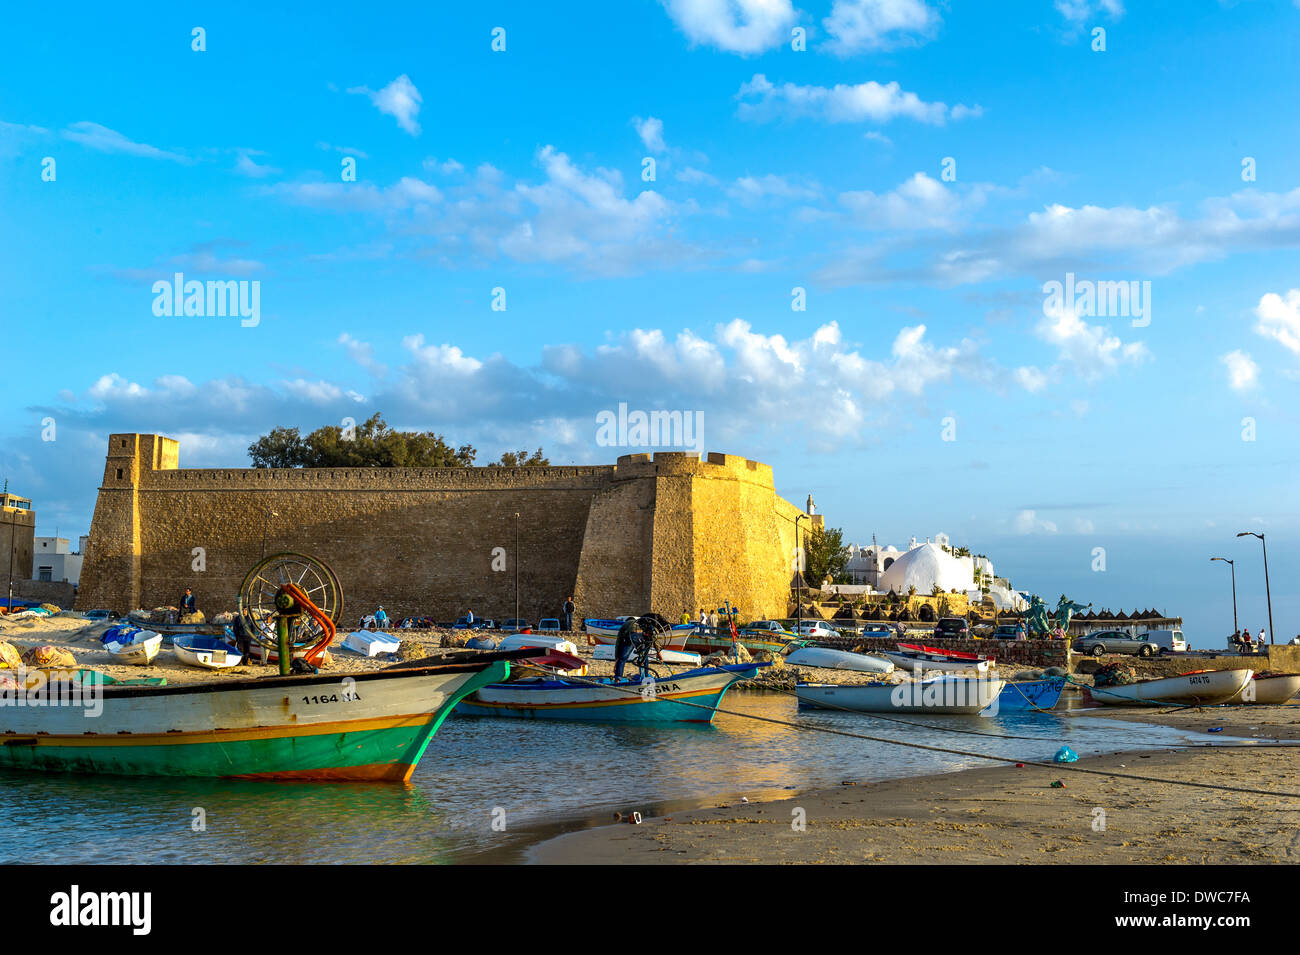 North Africa, Tunisia, Cap Bon, Hammamet, fisher boat front of fortification. - Stock Image